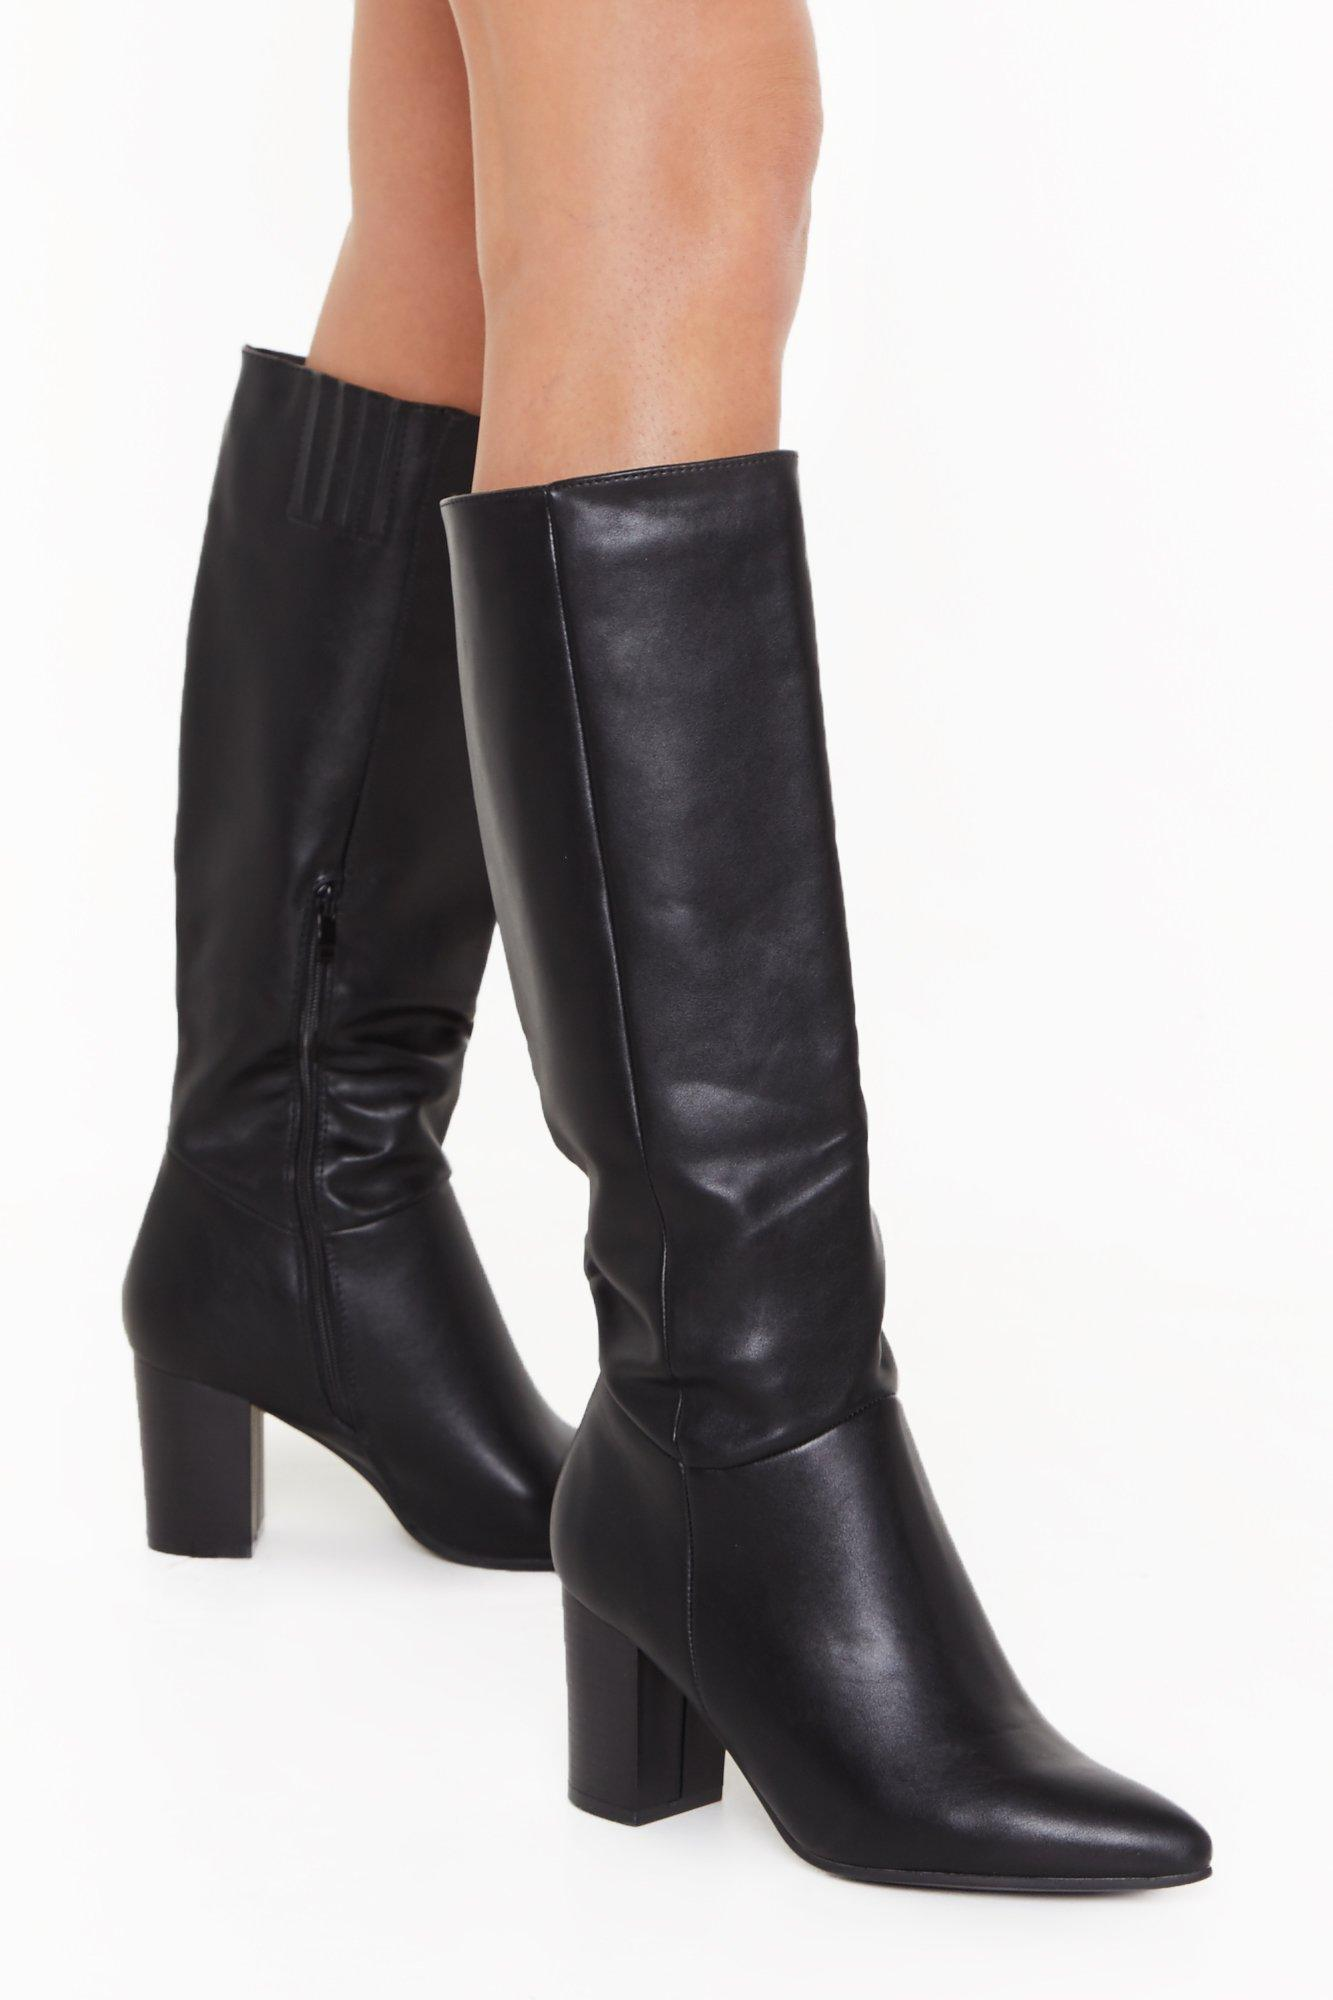 Stay Groovy Heeled Knee-High Boots